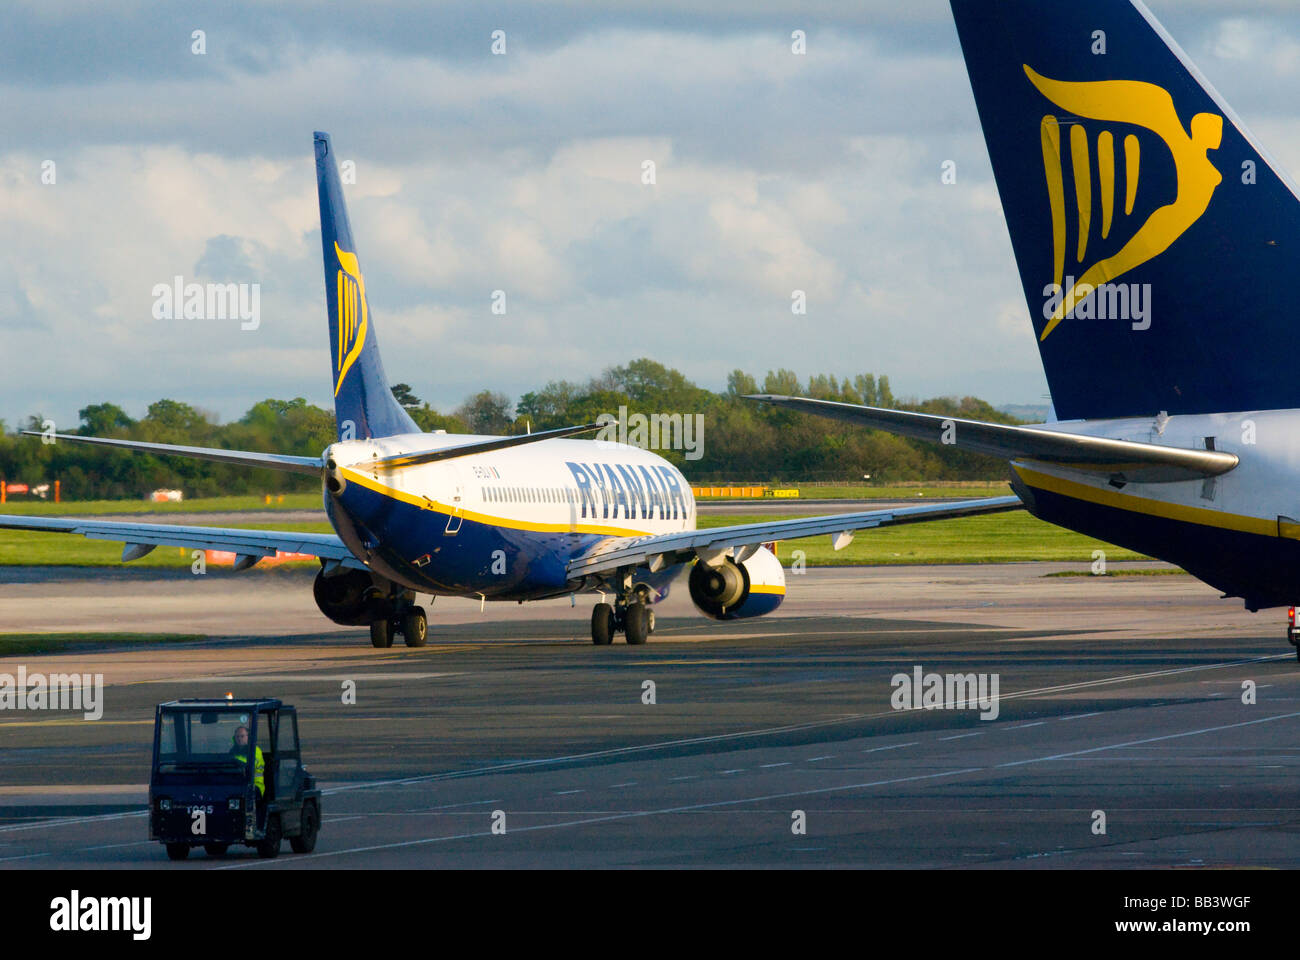 image of budget airline aircraft taxiing on runway - Stock Image